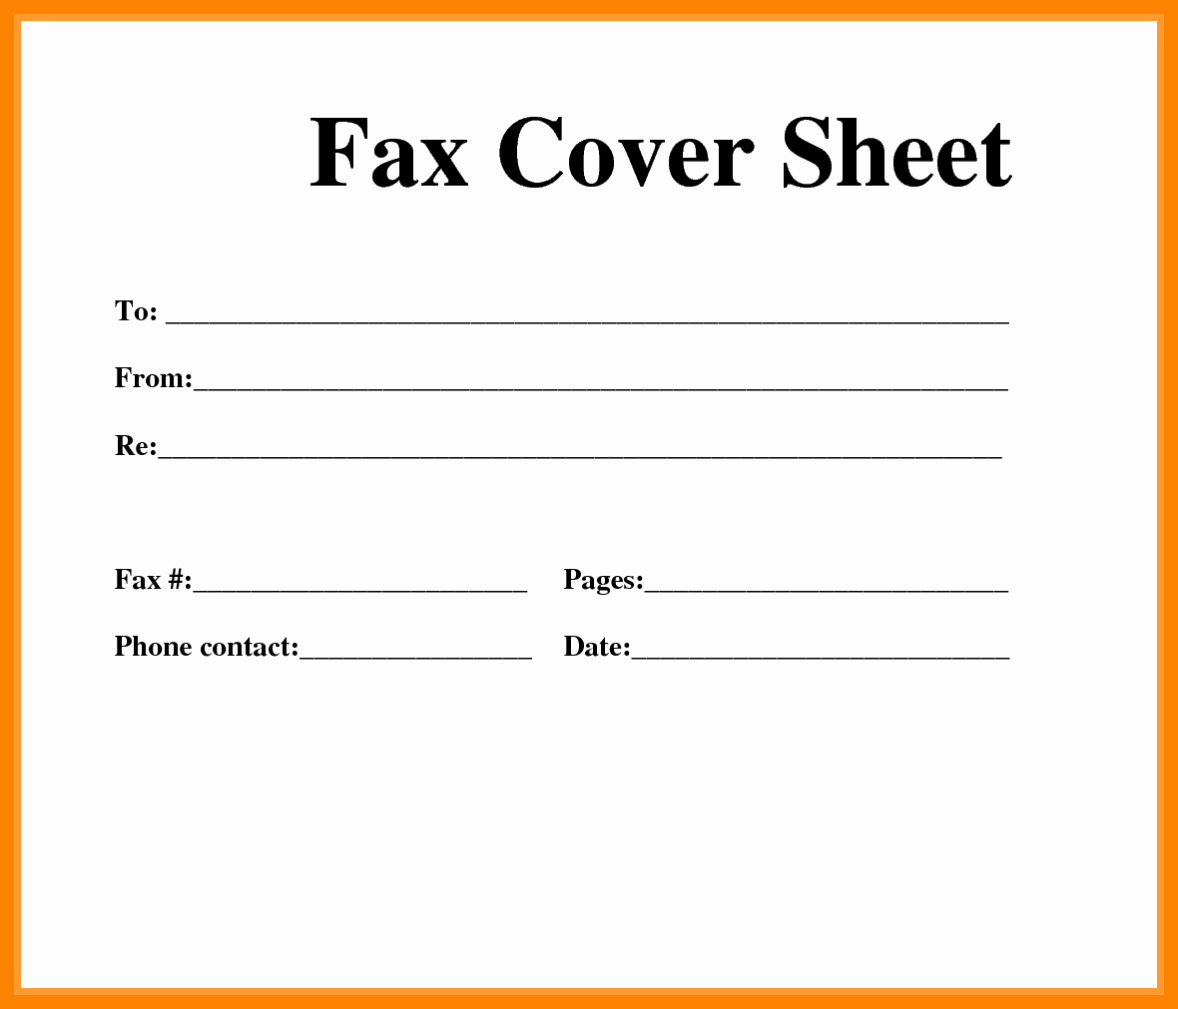 Free Blank Fax Cover Sheet Fresh 9 Free Printable Fax Cover Sheets Templates